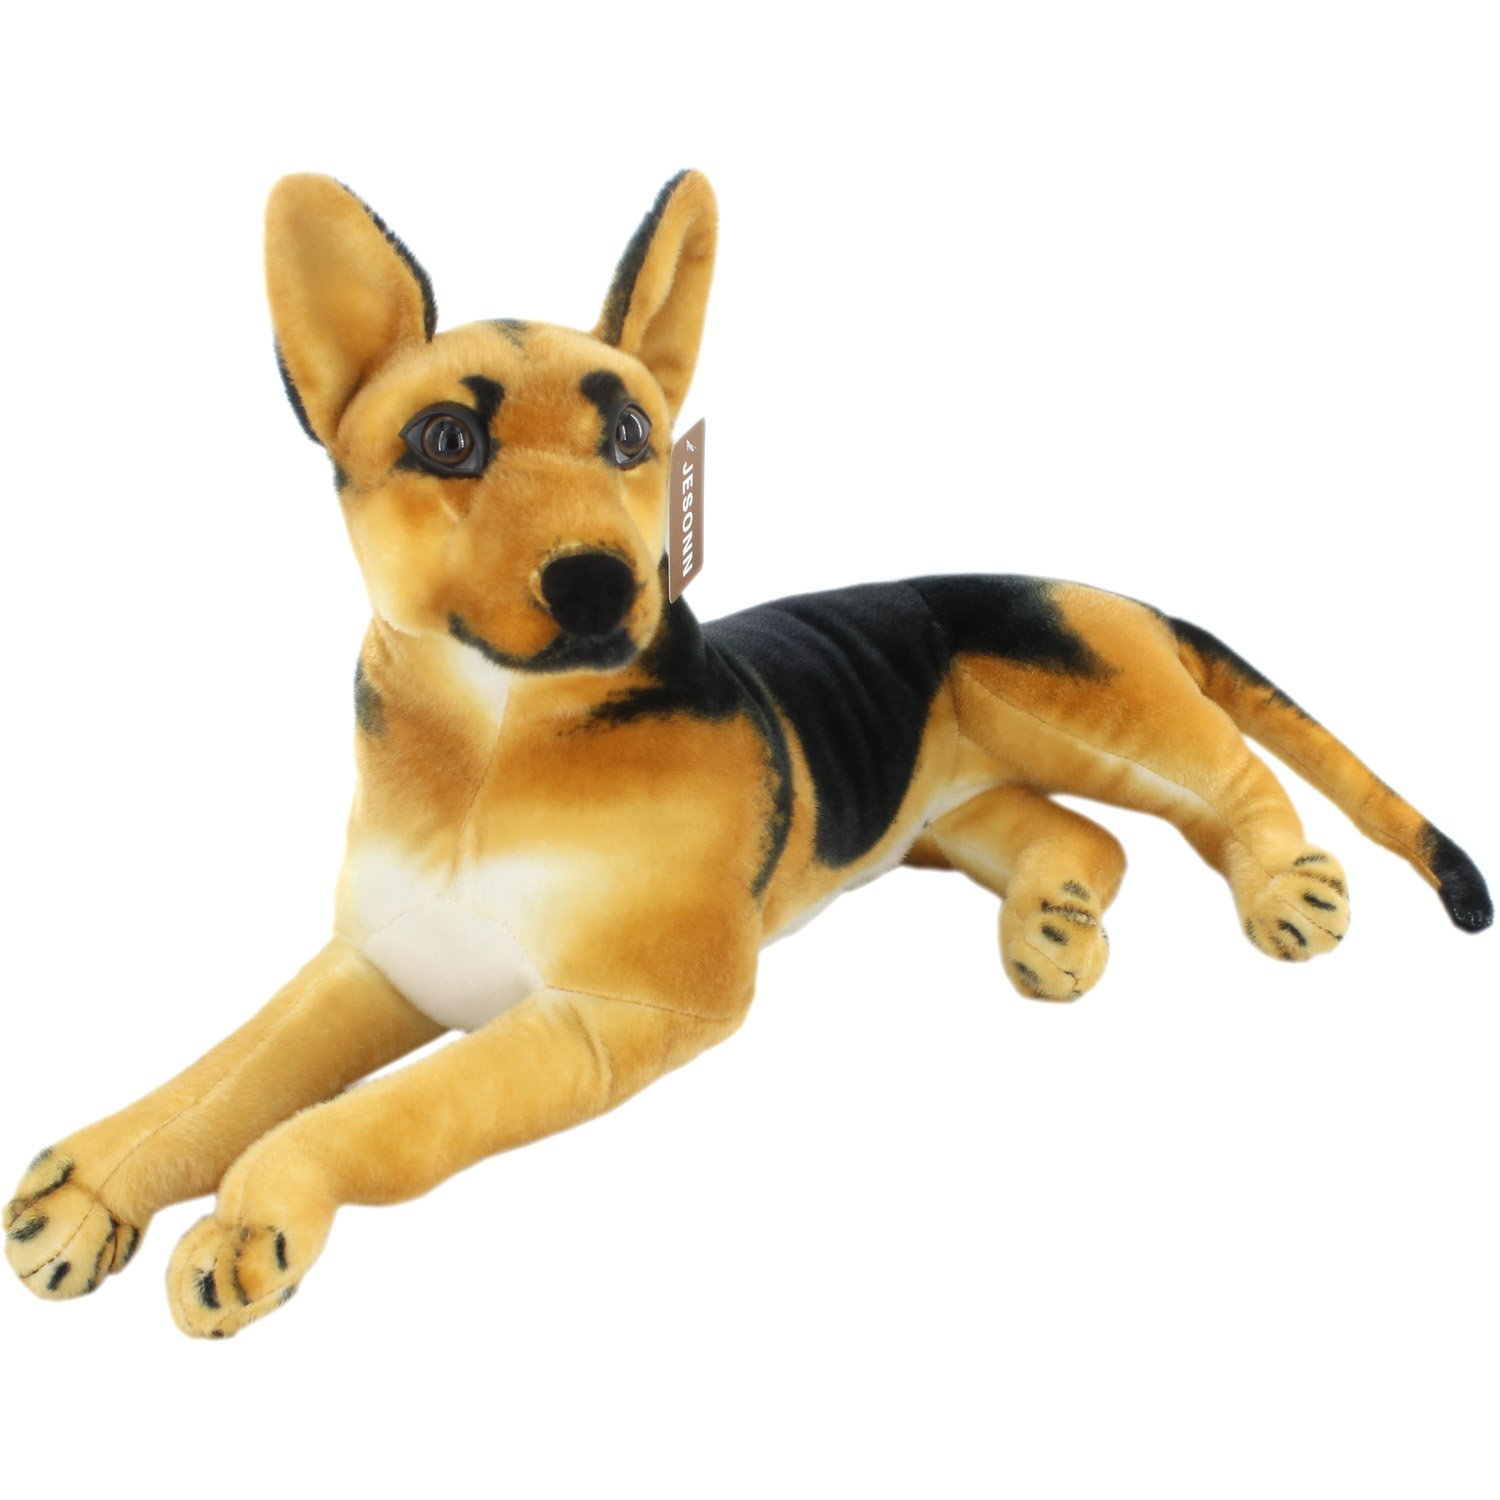 Amazon Jesonn Big Realistic Stuffed Animals Dog Shepherd Toys